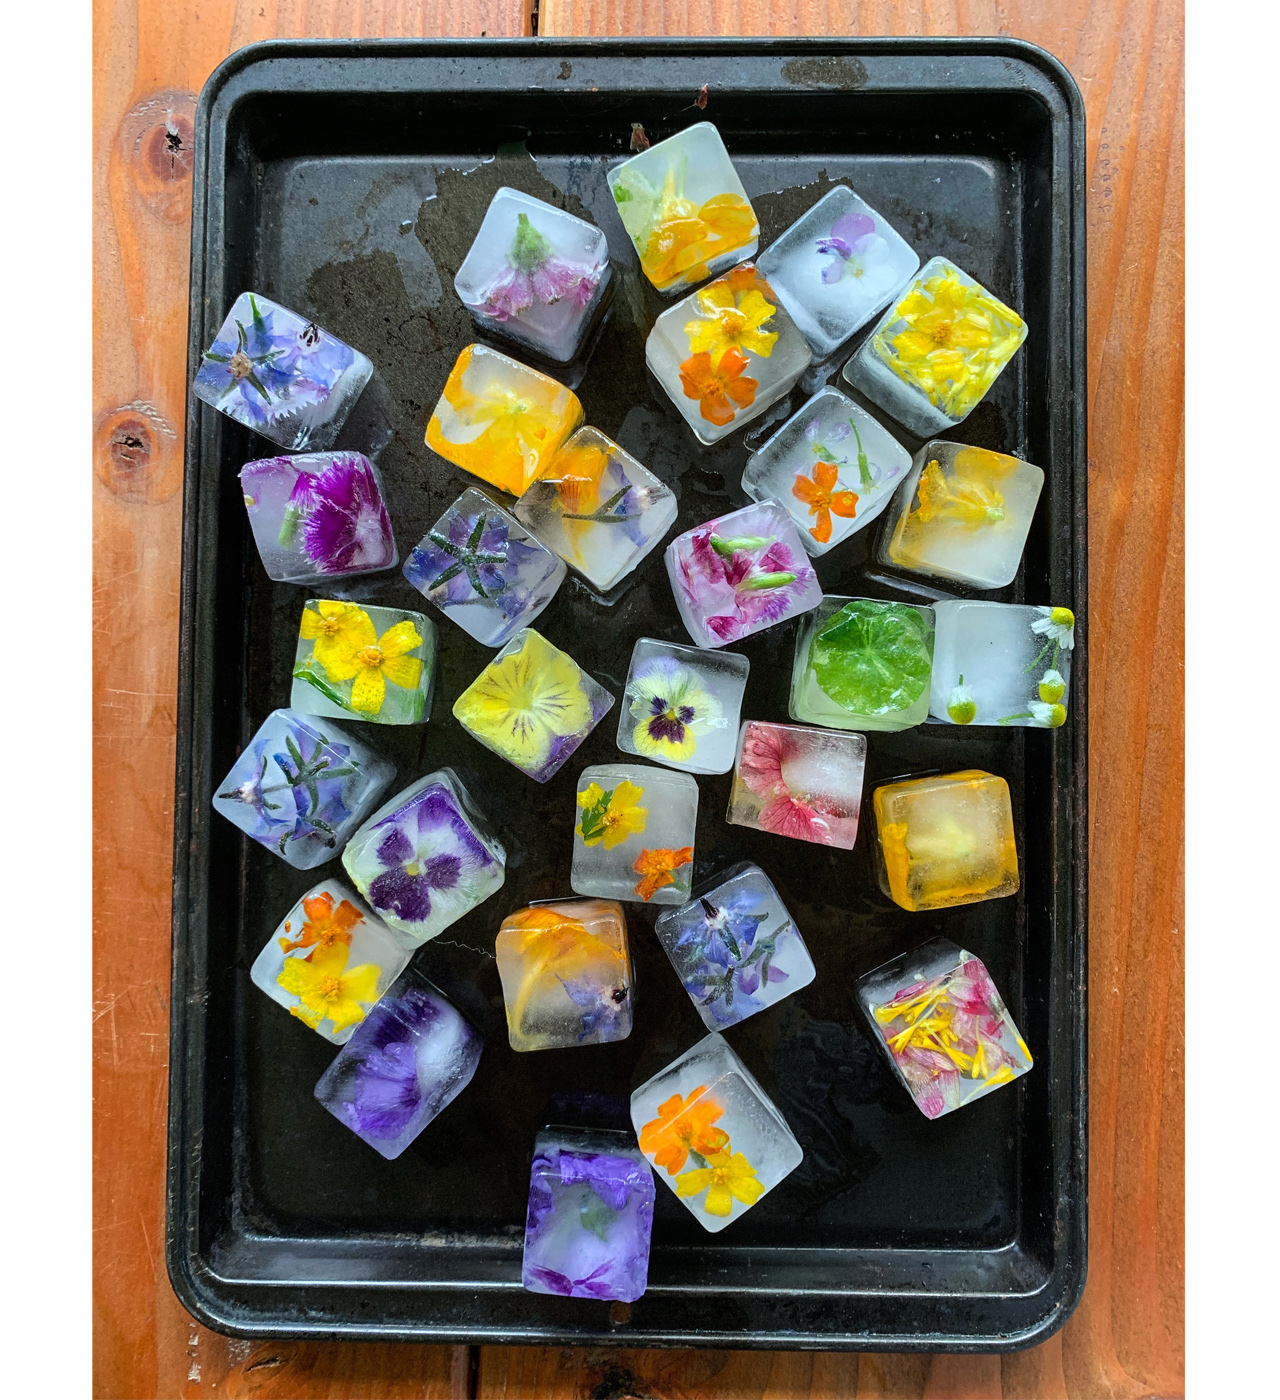 Square ice cubes with colorful edible flowers frozen into them on a cookie sheet